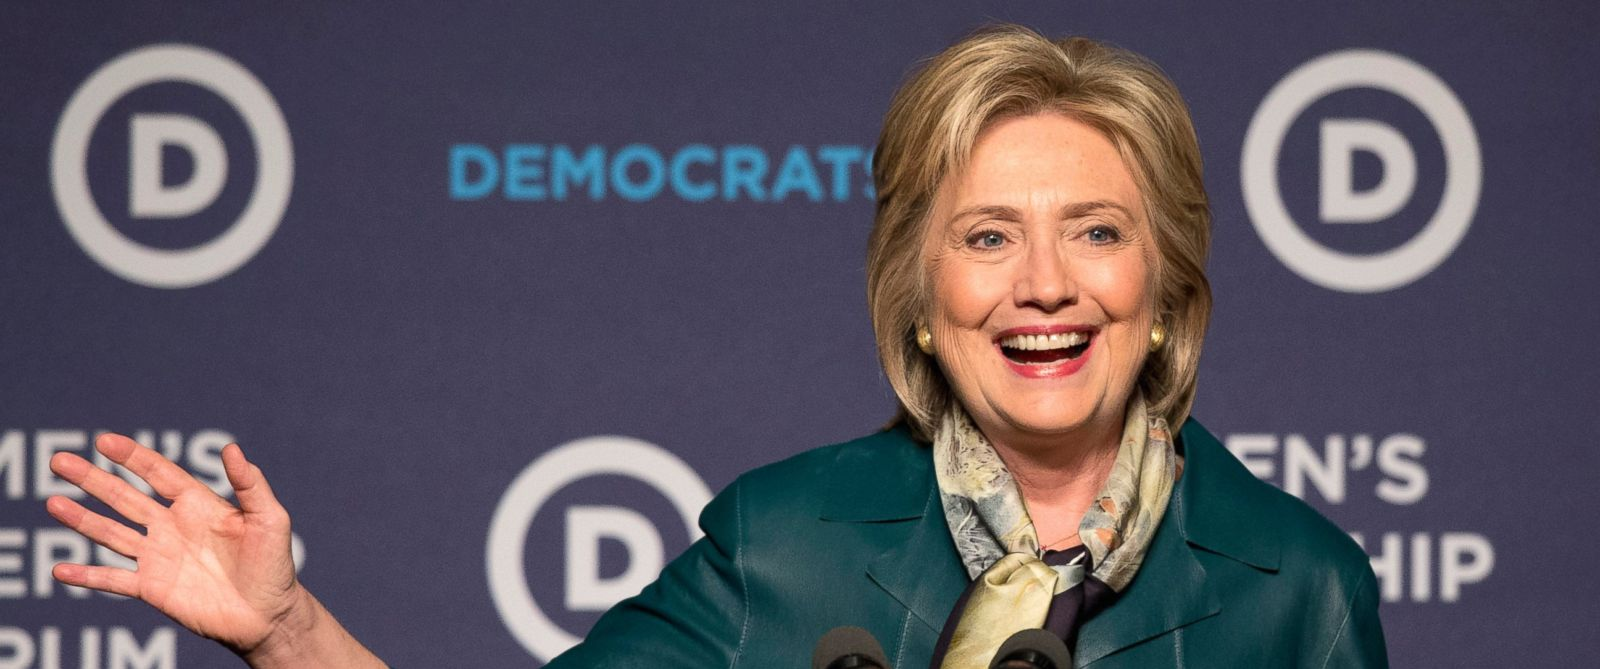 PHOTO: Democratic presidential candidate Hillary Clinton speaks to the Democratic National Committee 22nd Annual Womens Leadership Forum National Issues Conference in Washington, Oct. 23, 2015.